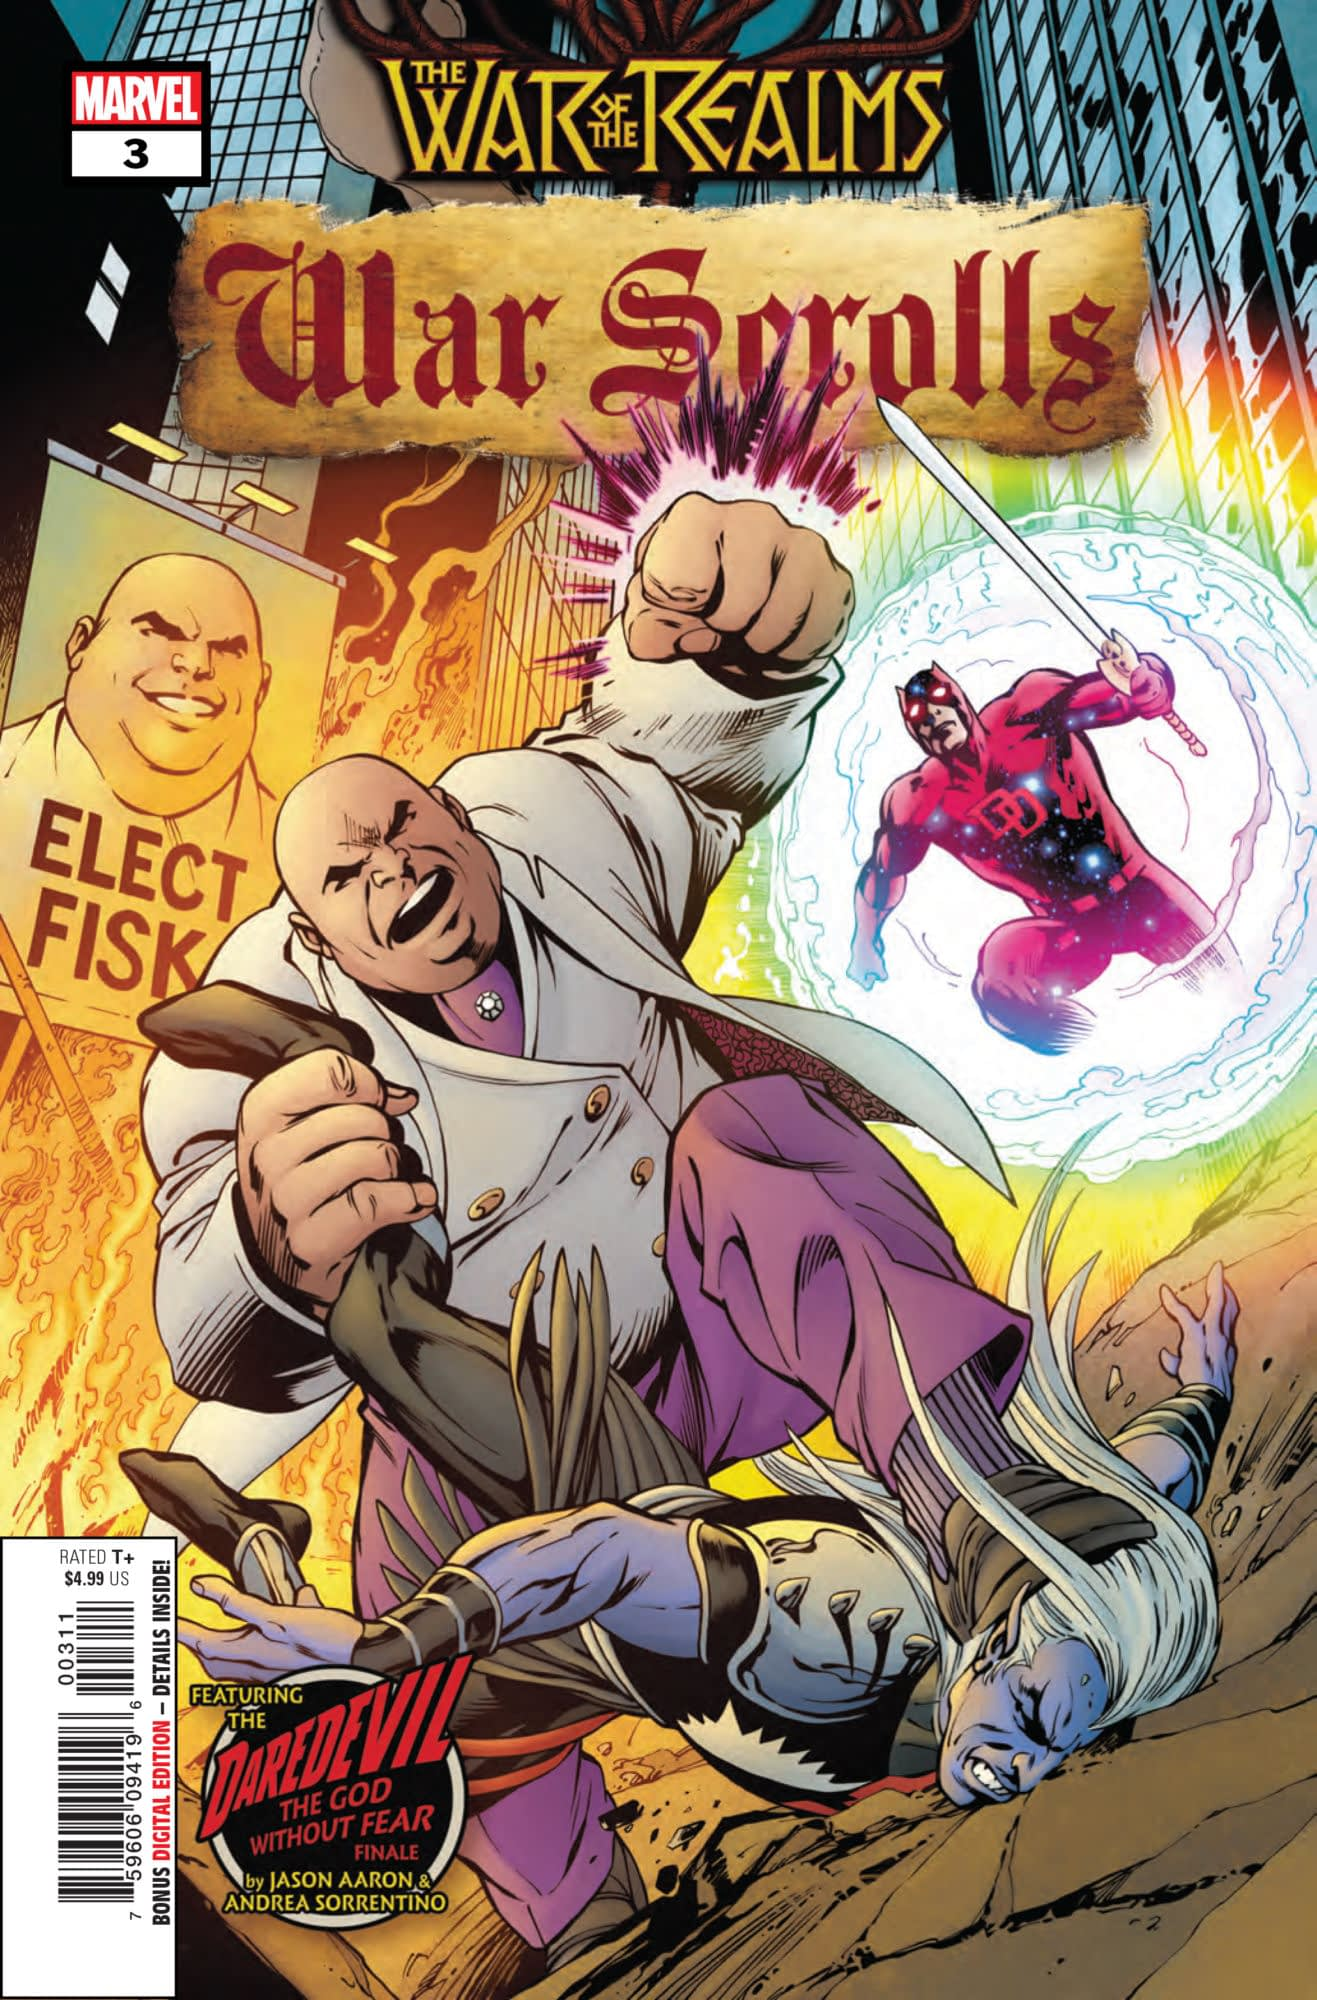 Daredevil Gains an Unfair Advantage in War of the Realms: War Scrolls #3 (Preview)